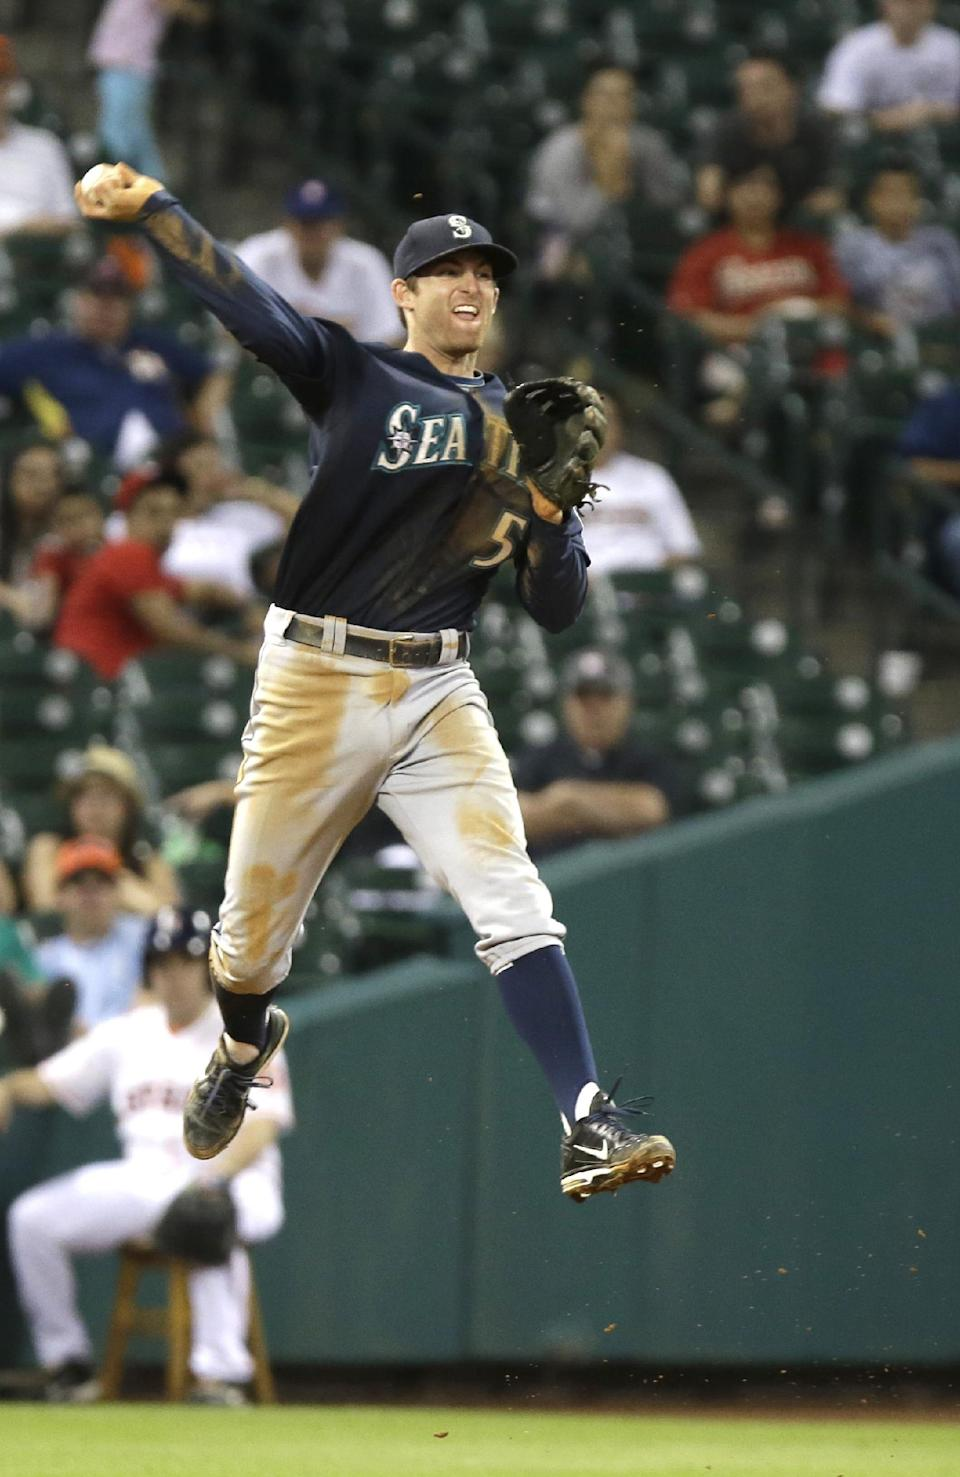 Mariners beat Astros 3-1 for 3rd straight victory